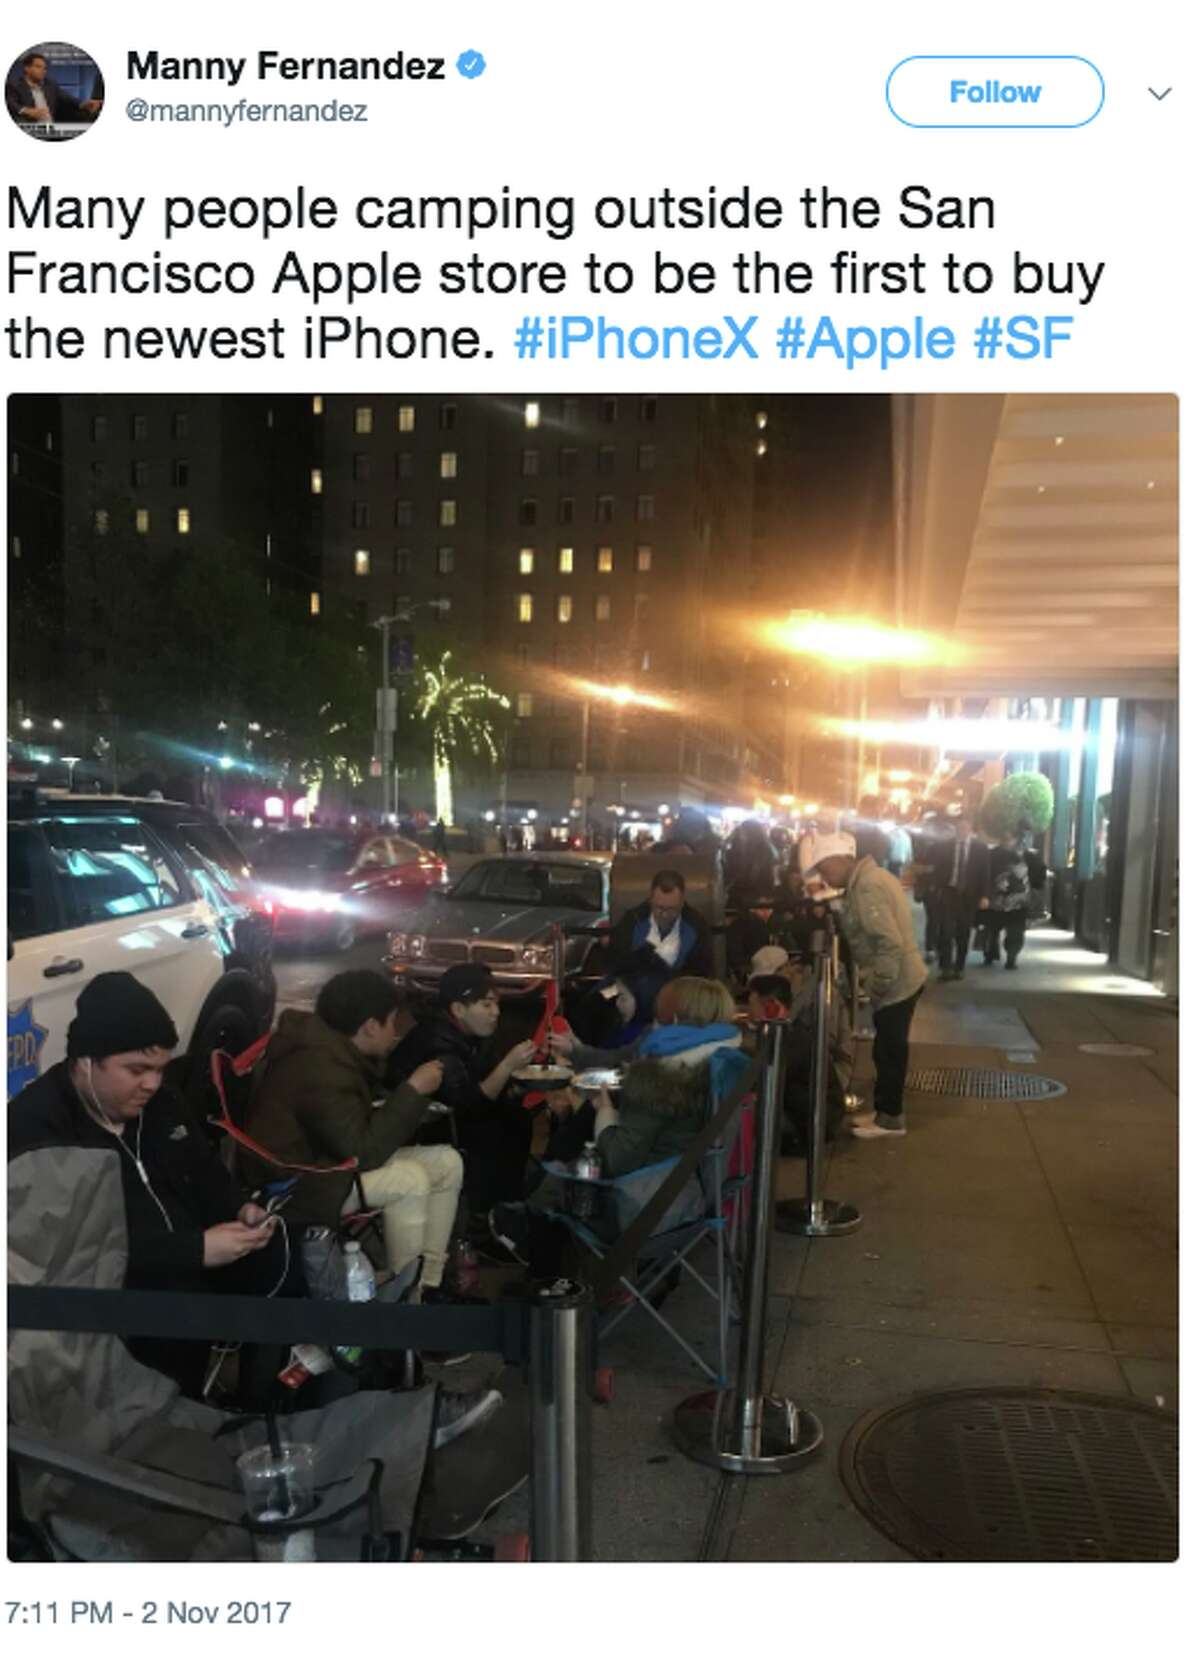 Lines for the new iPhone X began to form at San Francisco's Apple stores on Nov. 2, 2017. Apple began selling the phone in stores on Nov. 3 at 8 a.m.